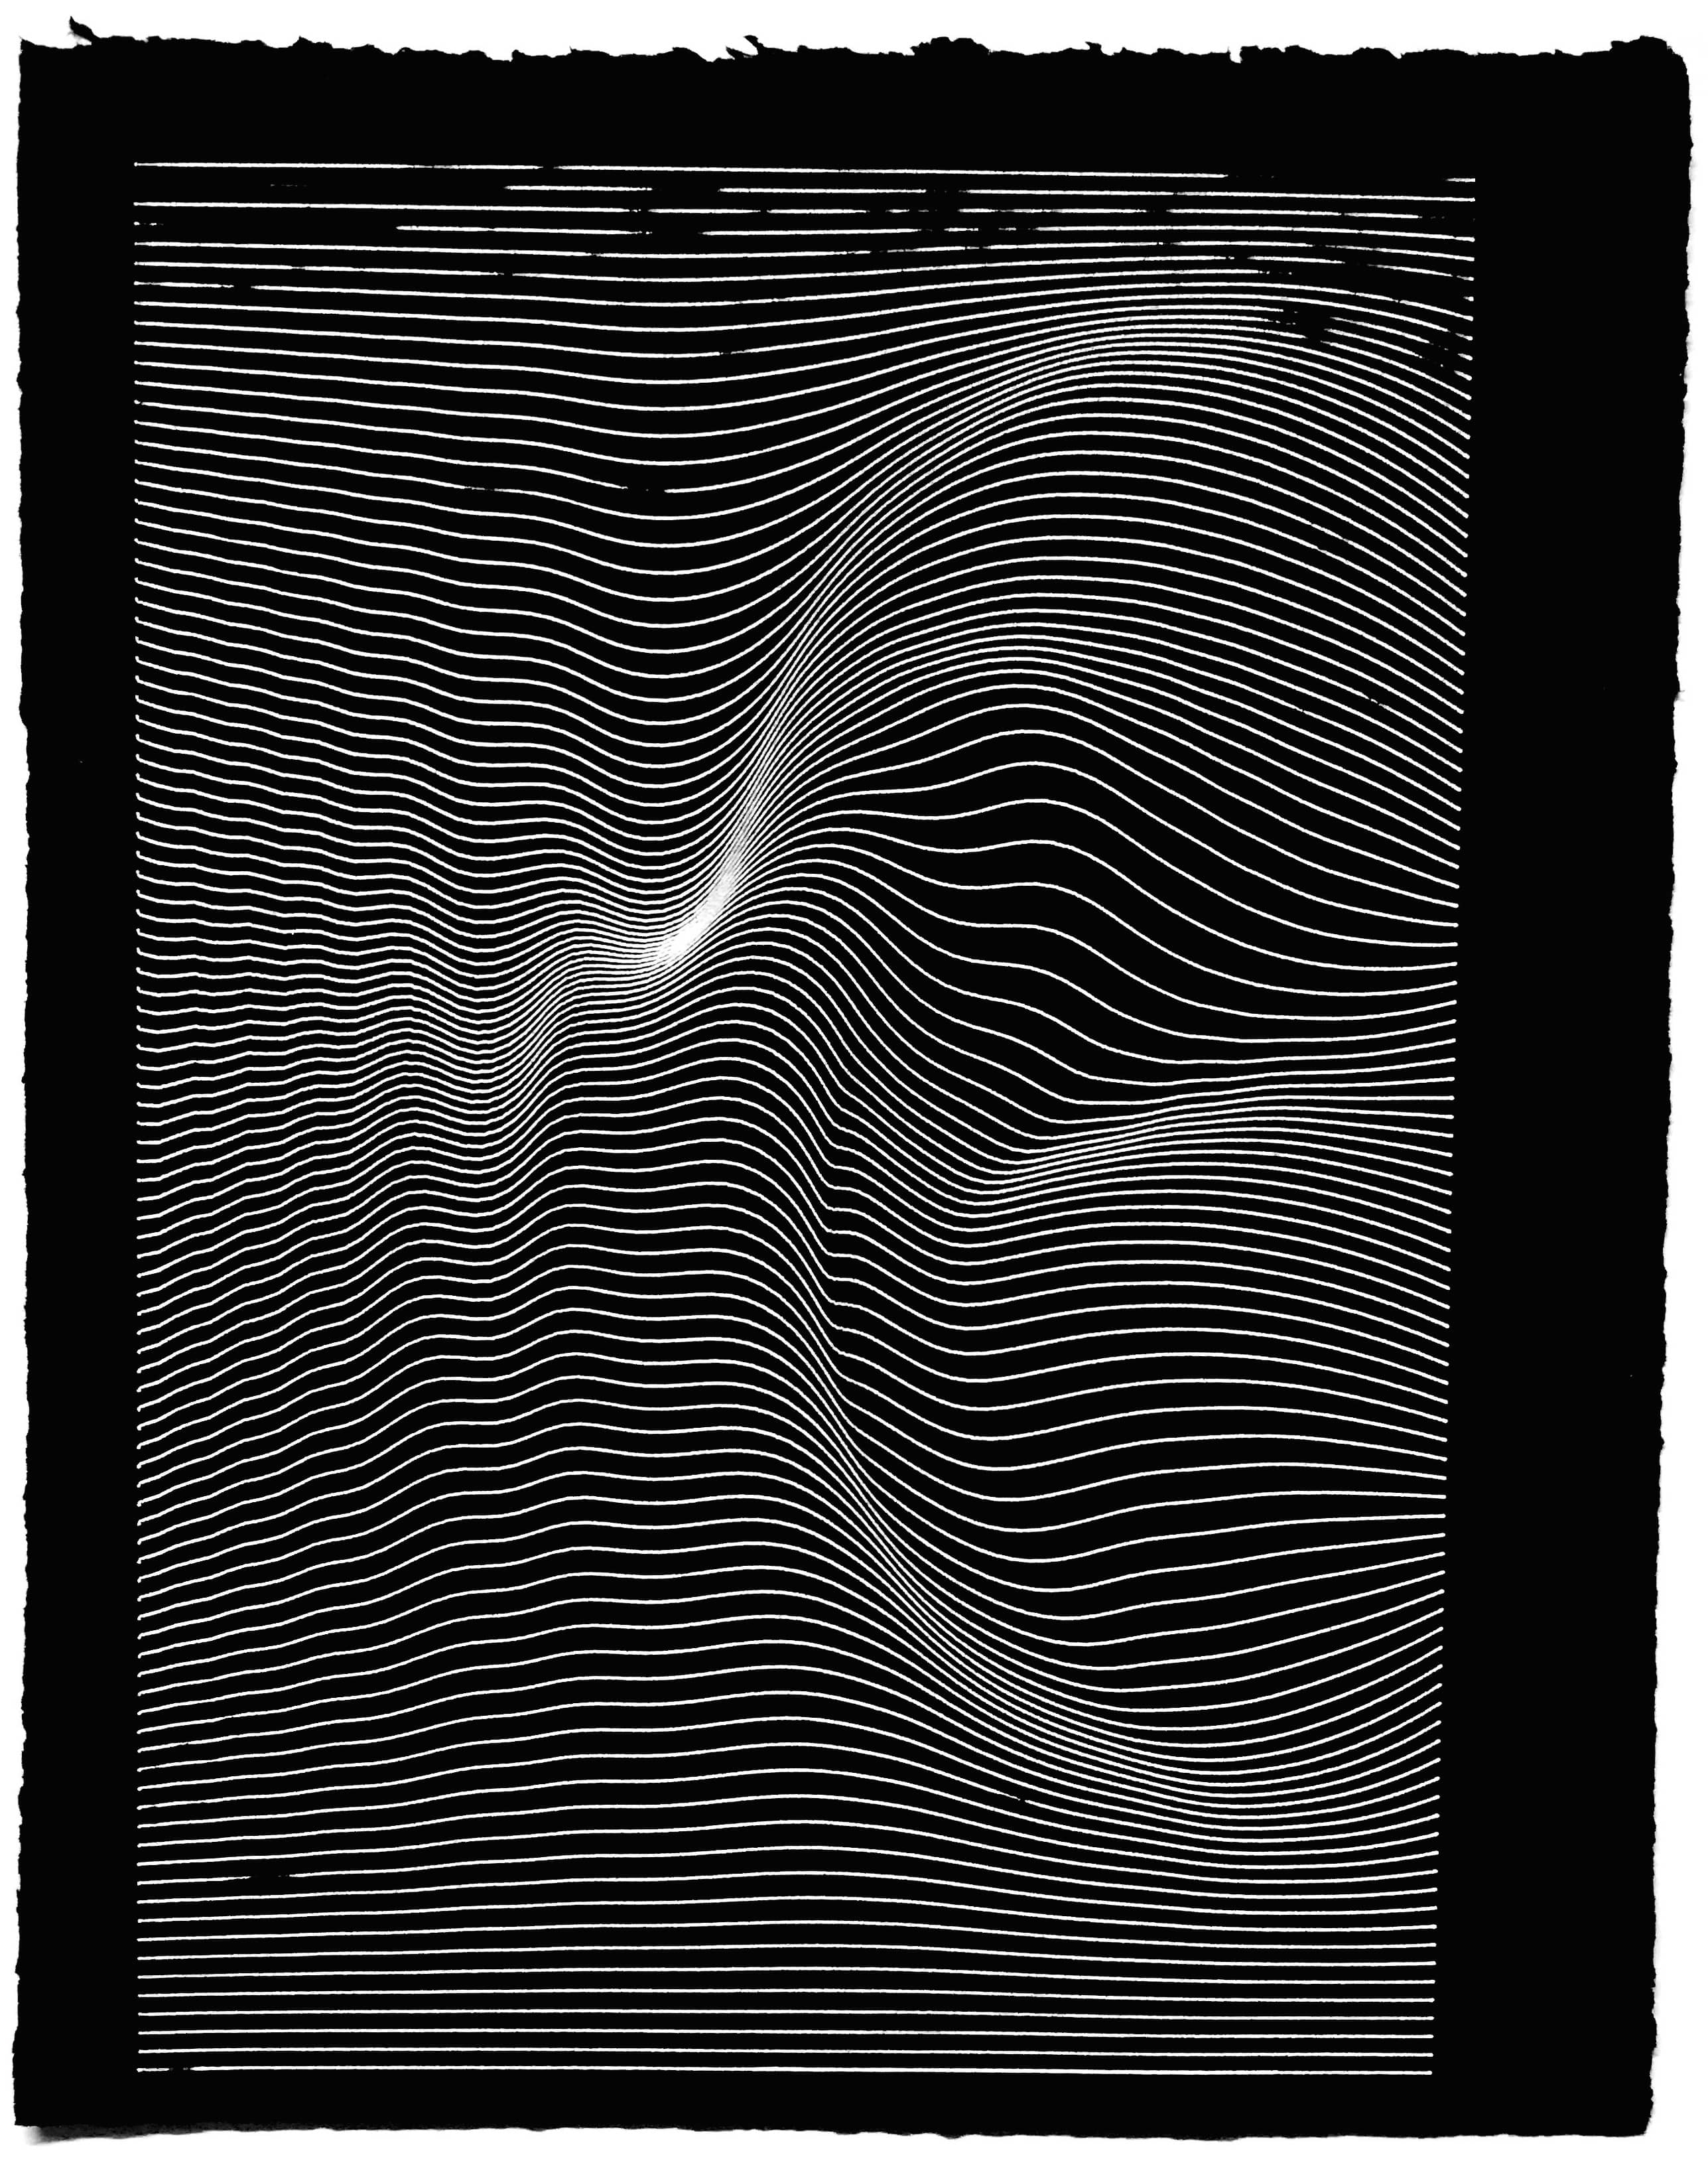 A drawing of a sine wave lerp plotted on black paper using an AxiDraw V3 and a white gel pen.